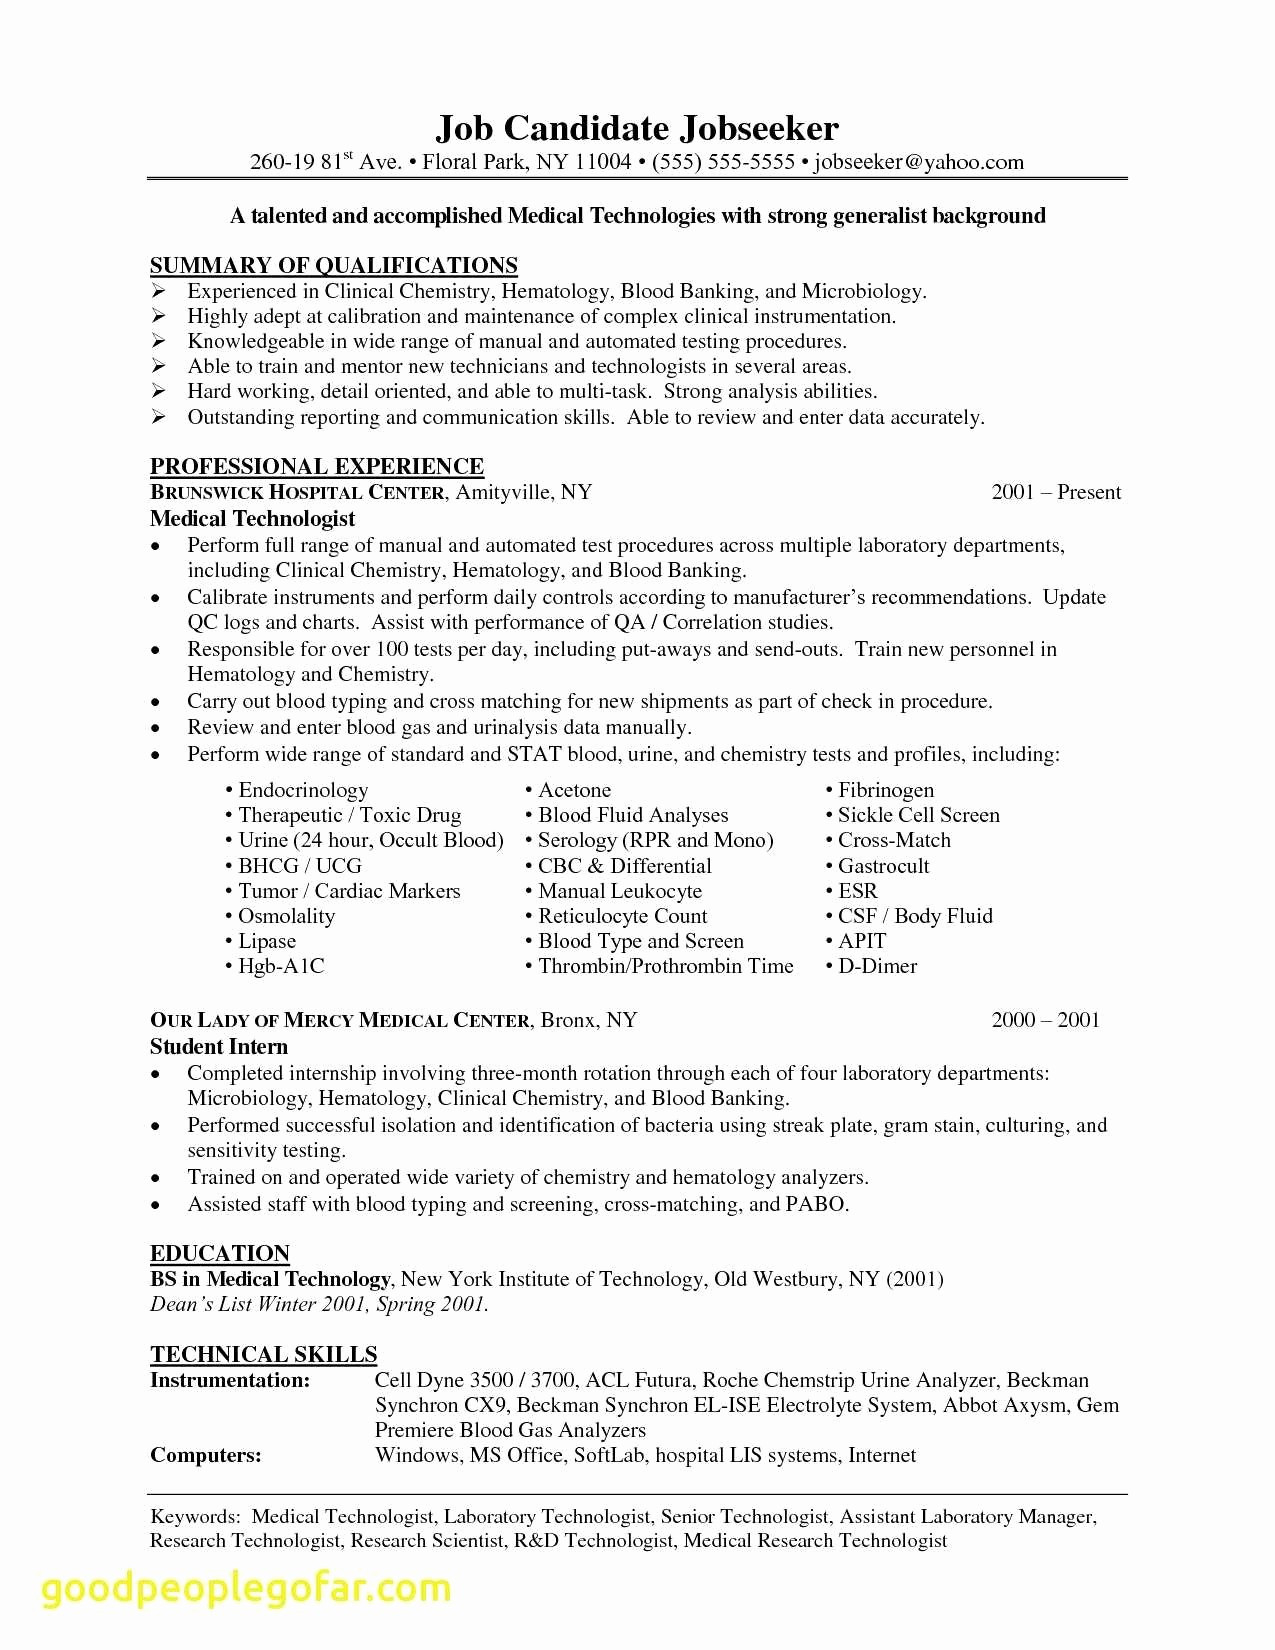 Medical Technologist Resume Template - Radiology Resume Unique Sample Resume for Radiology Nurse at Resume